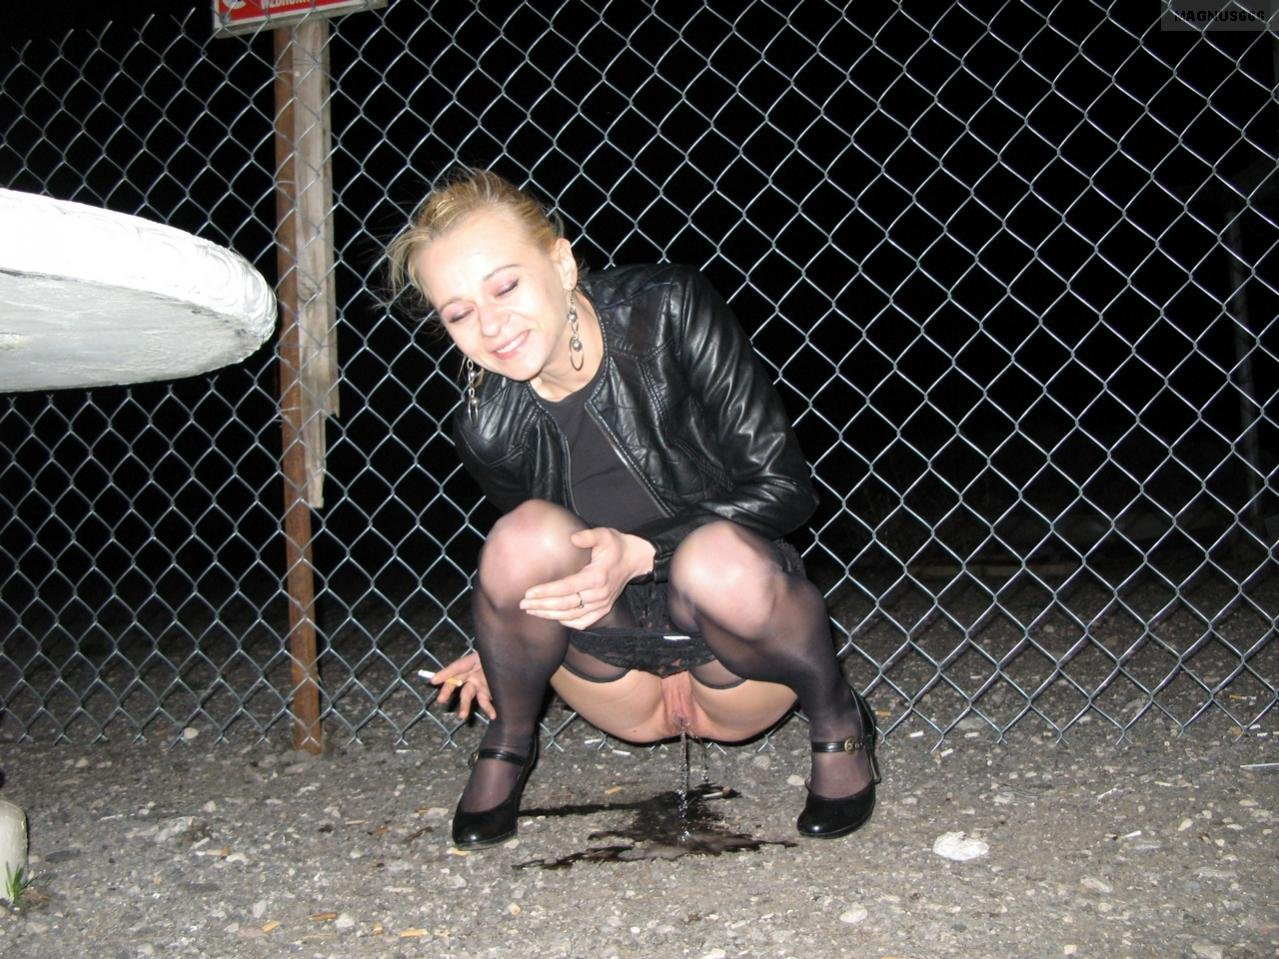 Pissing. Gallery - 1097. Photo - 17